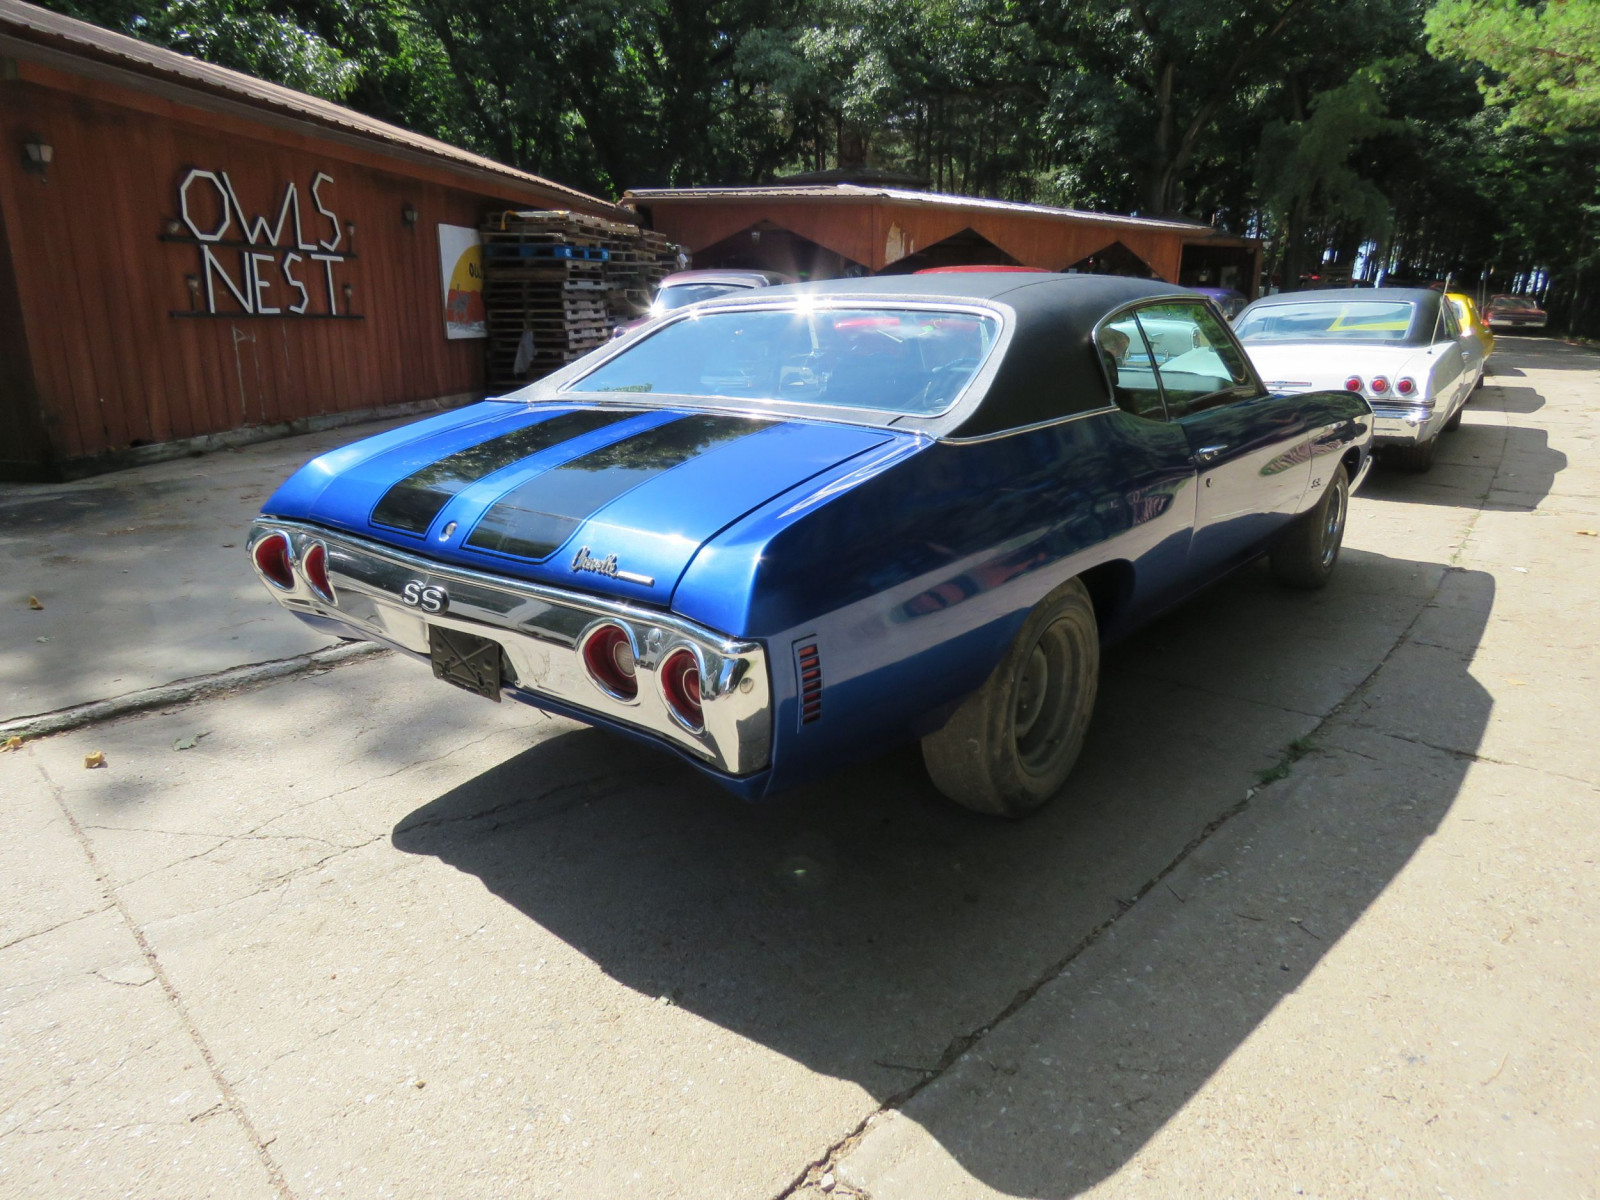 1972 Chevrolet Chevelle SS 2dr HT - Image 4